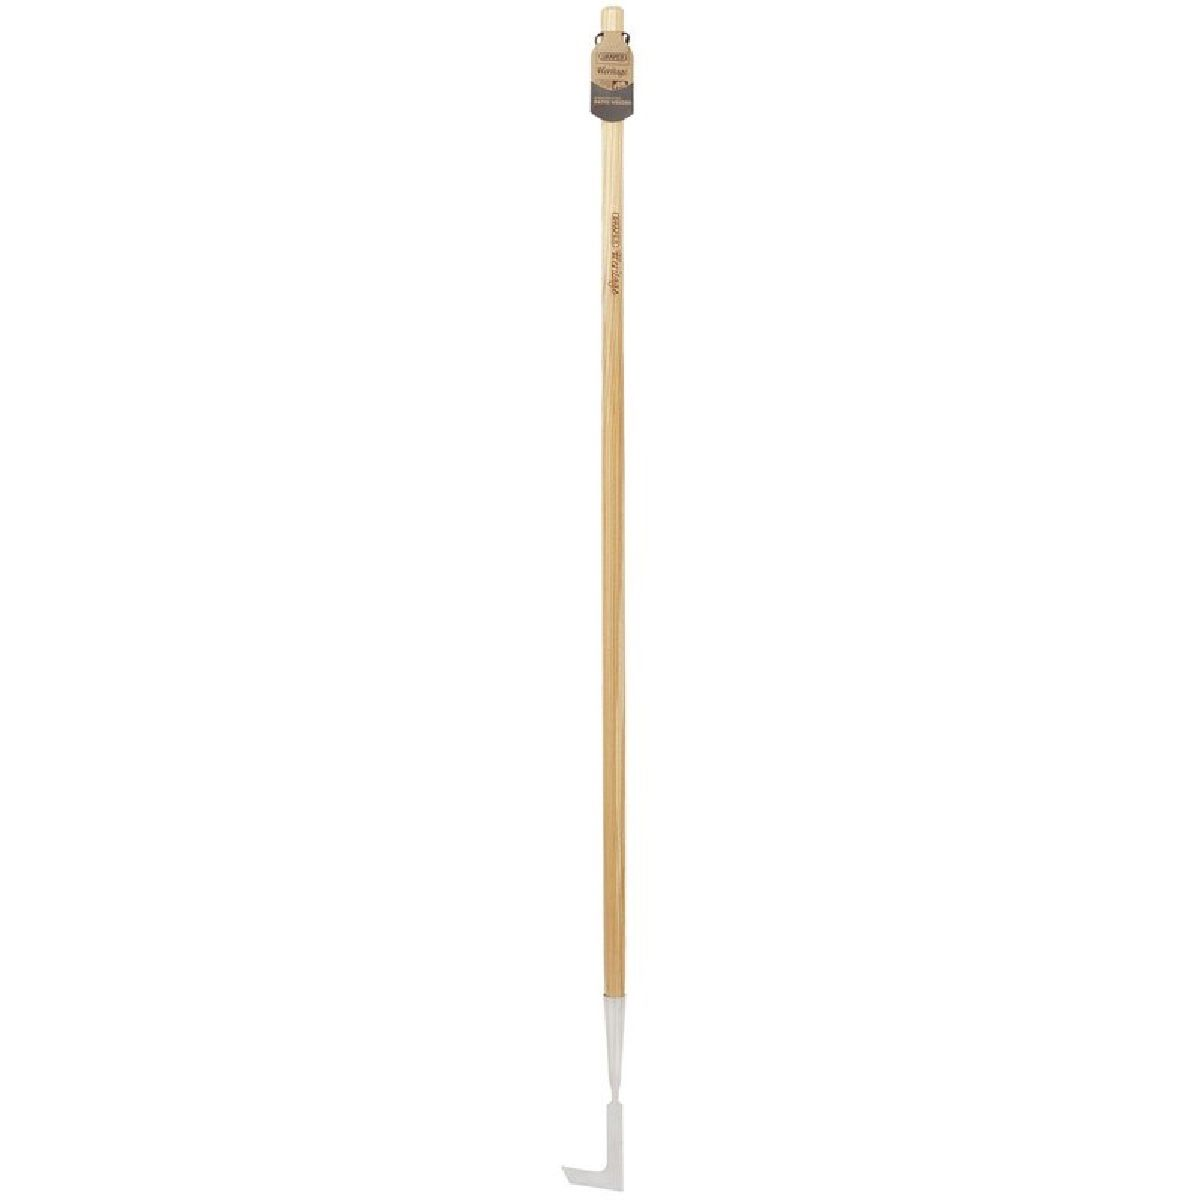 Draper Stainless Steel Patio Weeder with Ash Handle